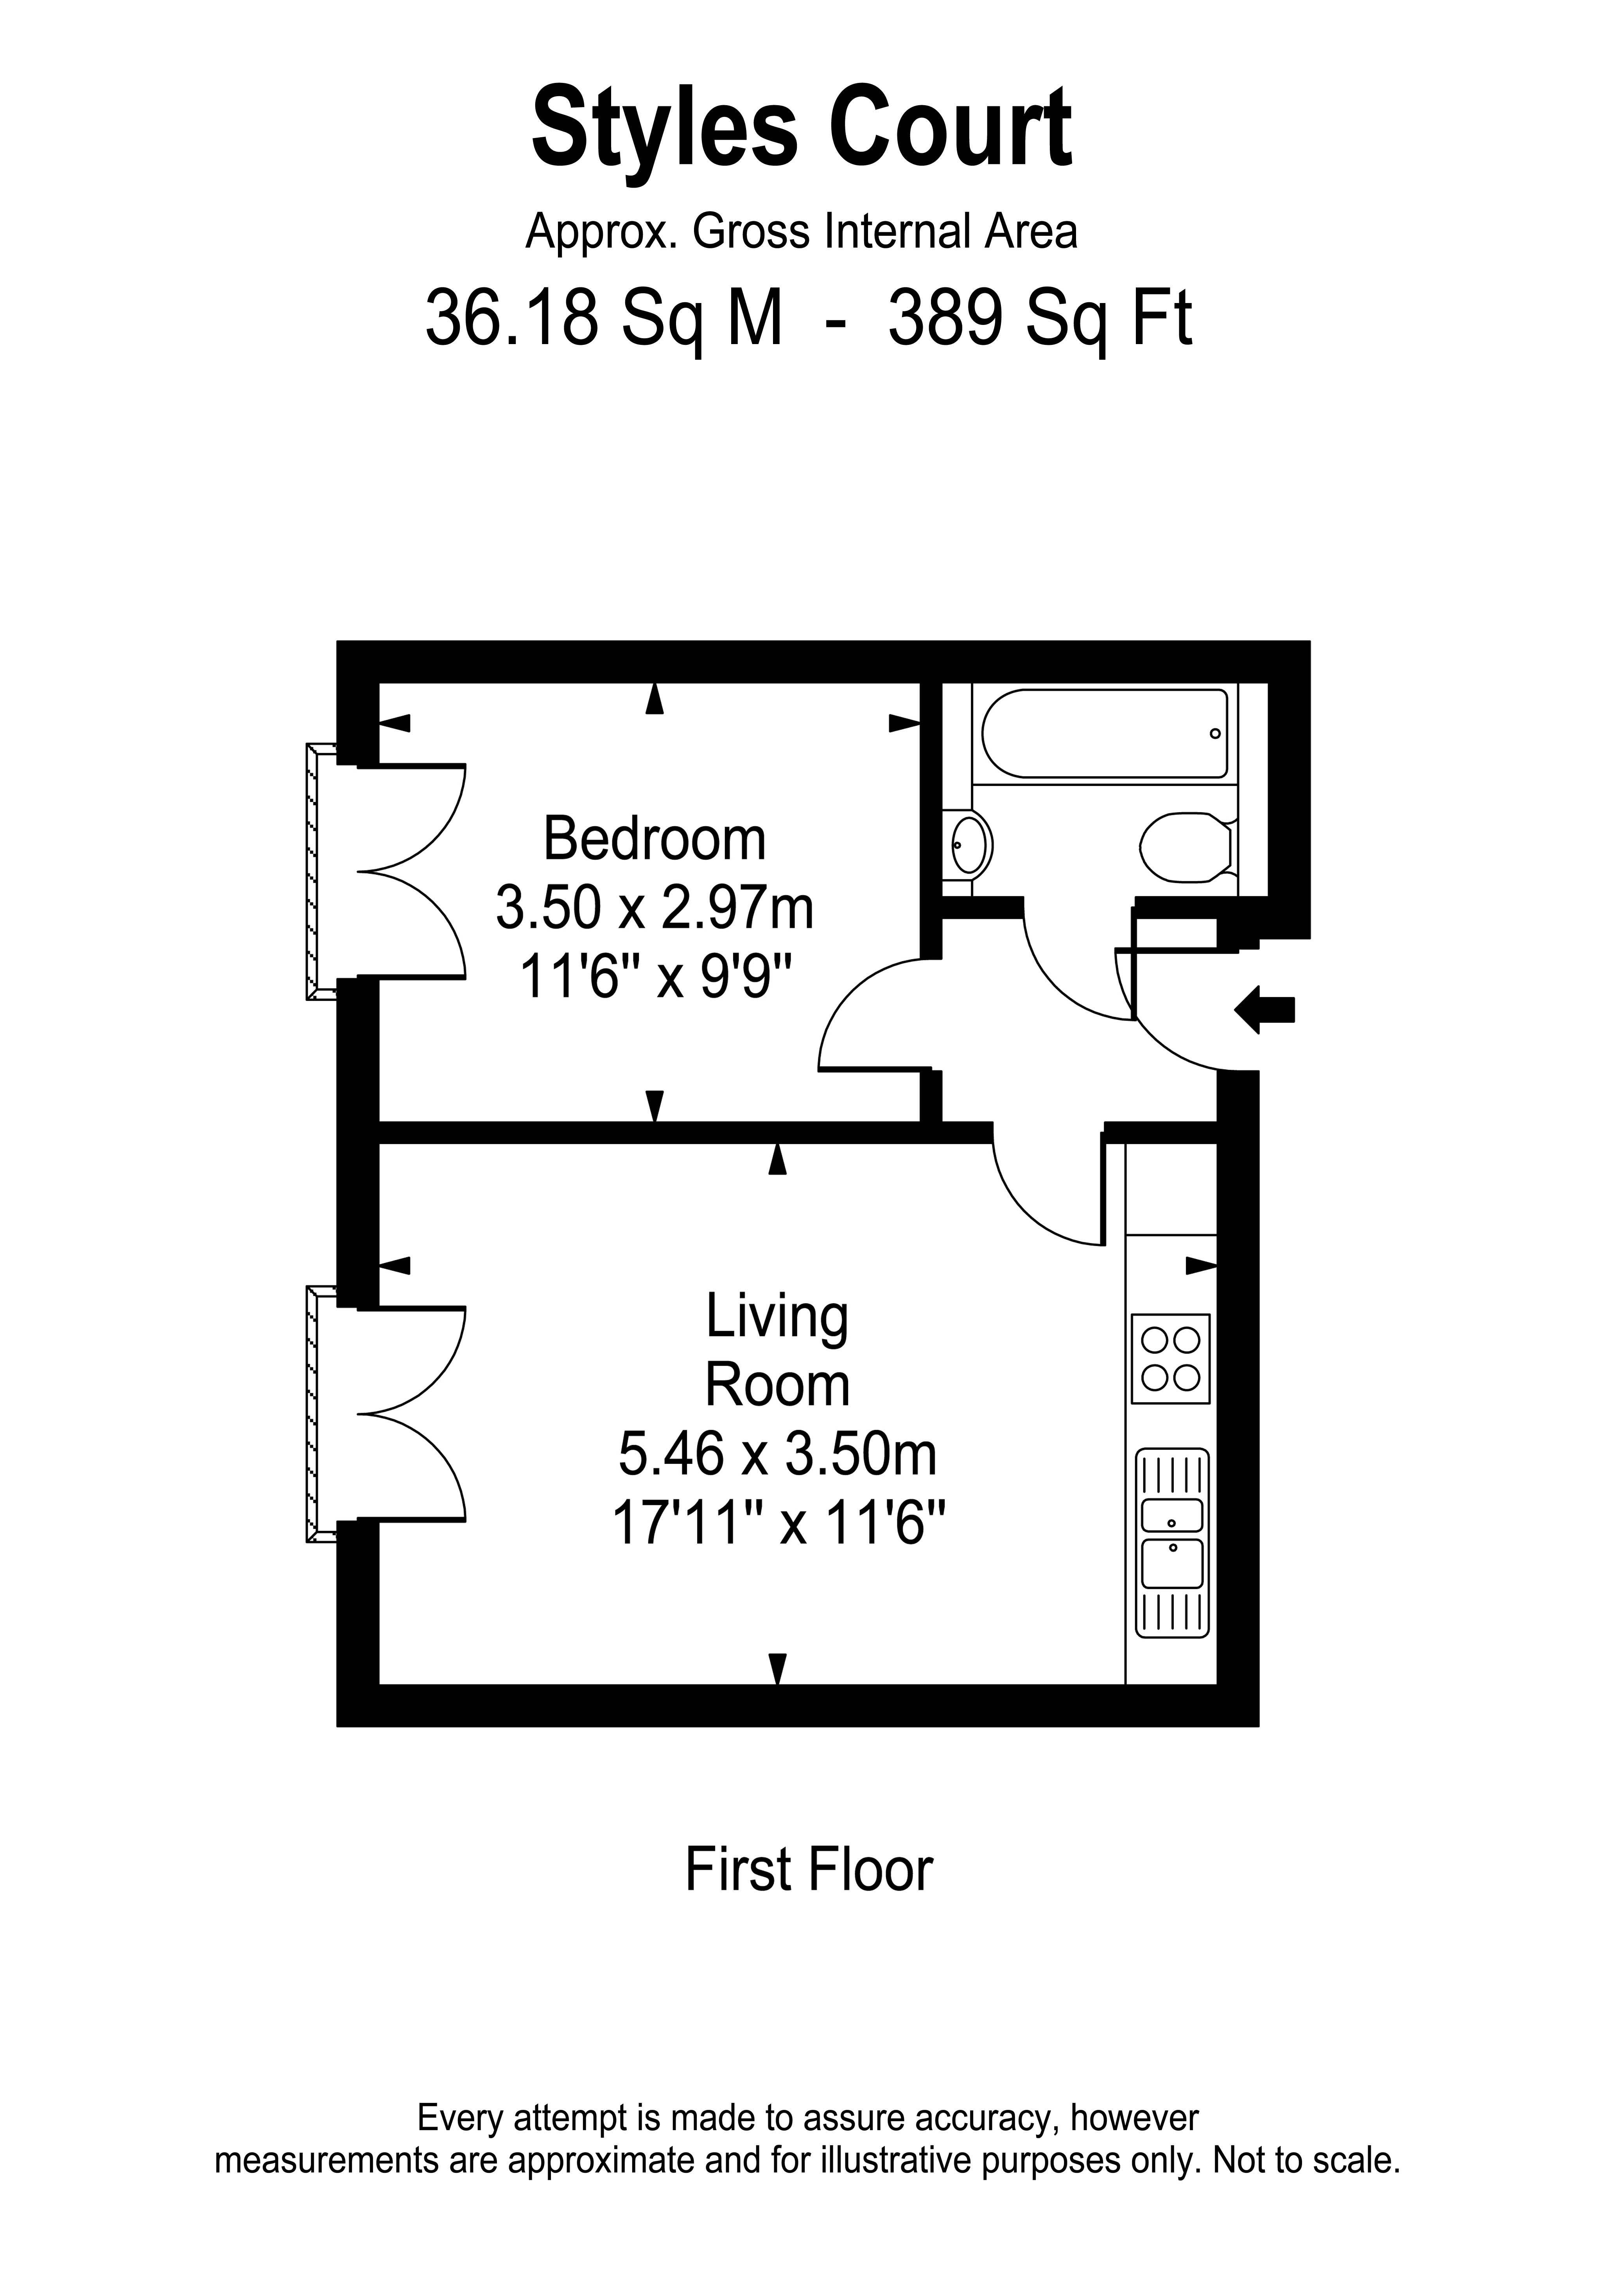 Floorplans For Styles Court, Walton Road, East Molesey